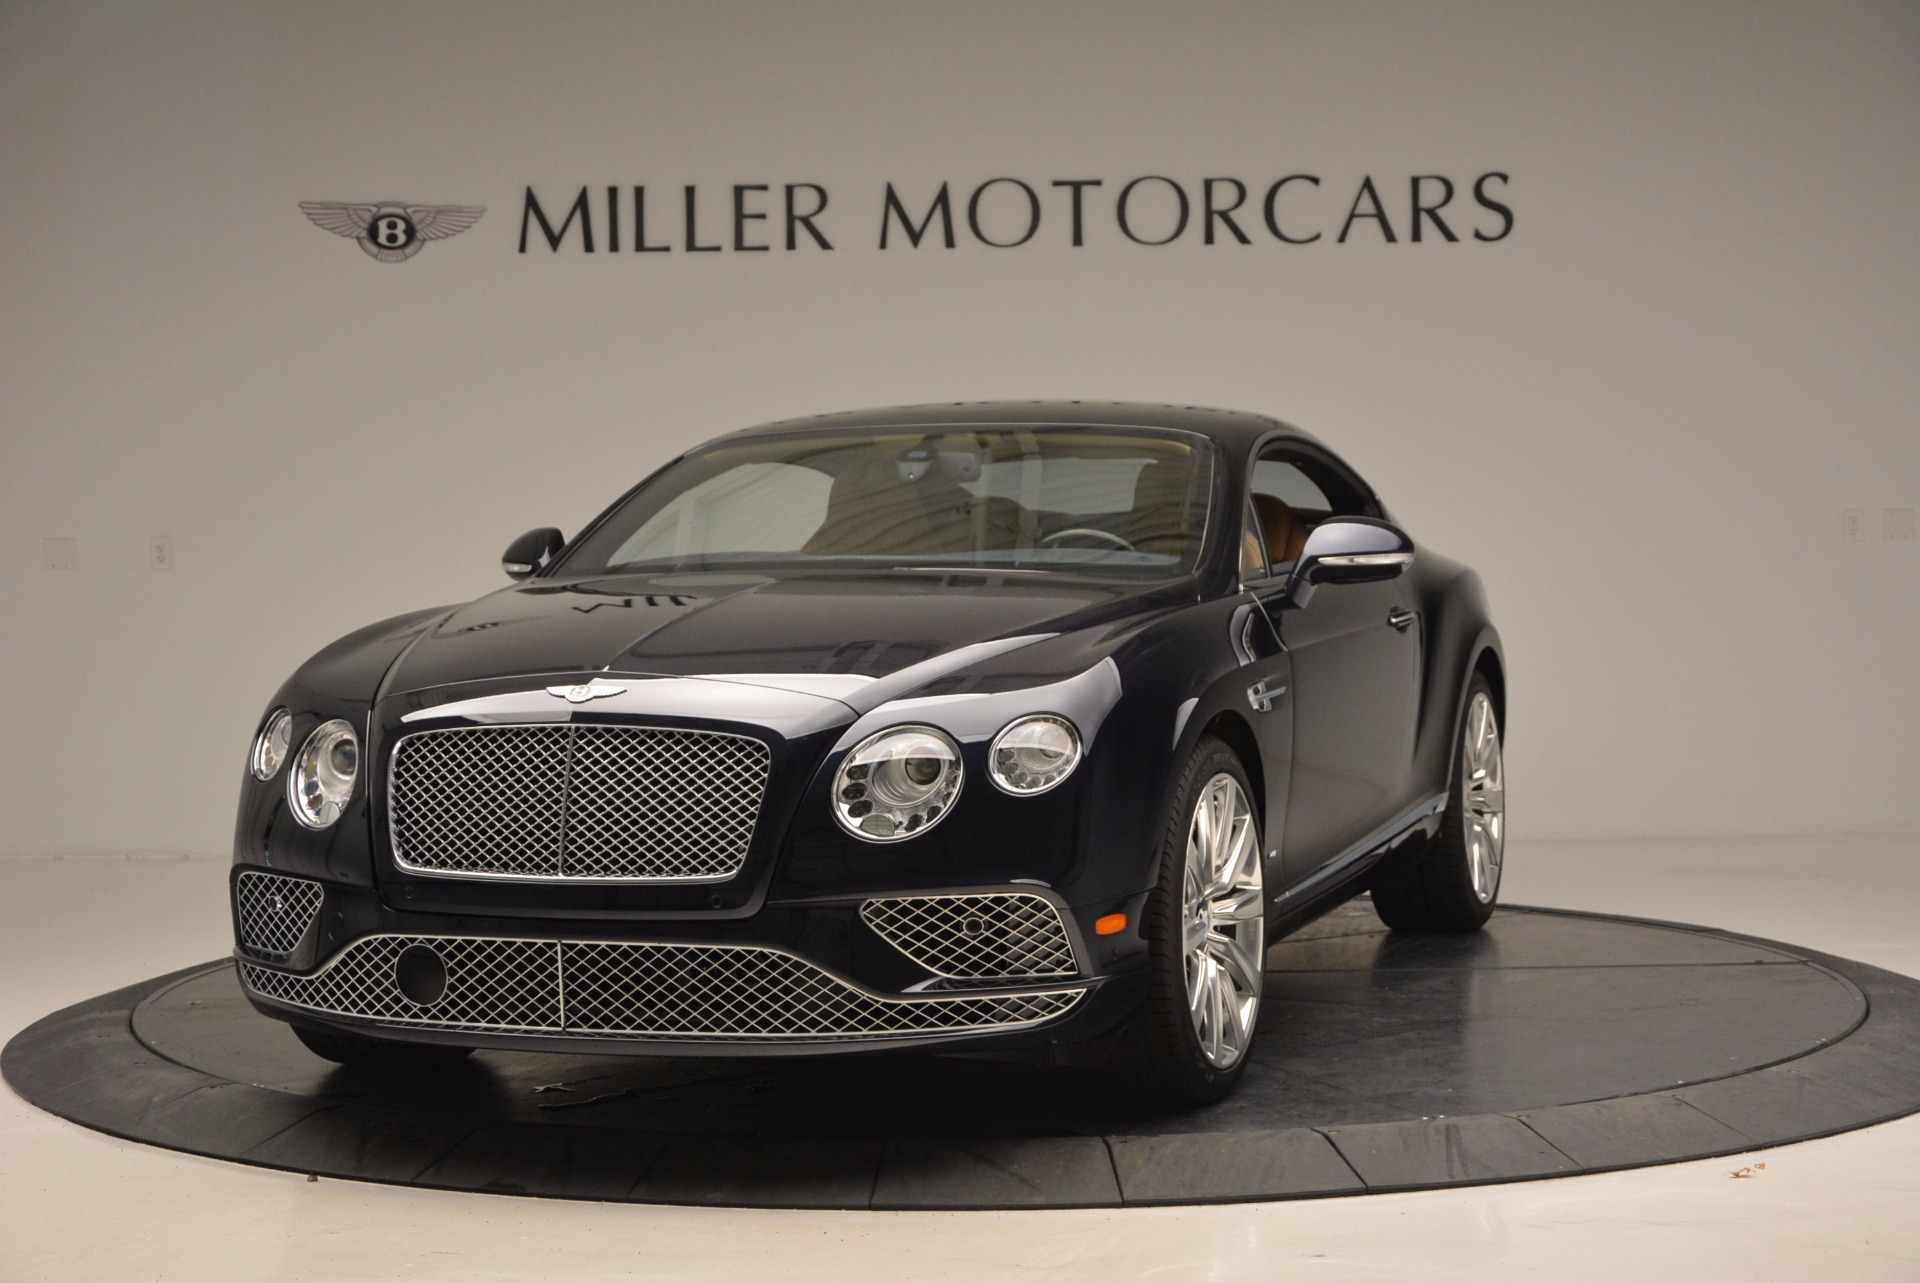 New 2017 Bentley Continental GT W12 for sale Sold at Rolls-Royce Motor Cars Greenwich in Greenwich CT 06830 1